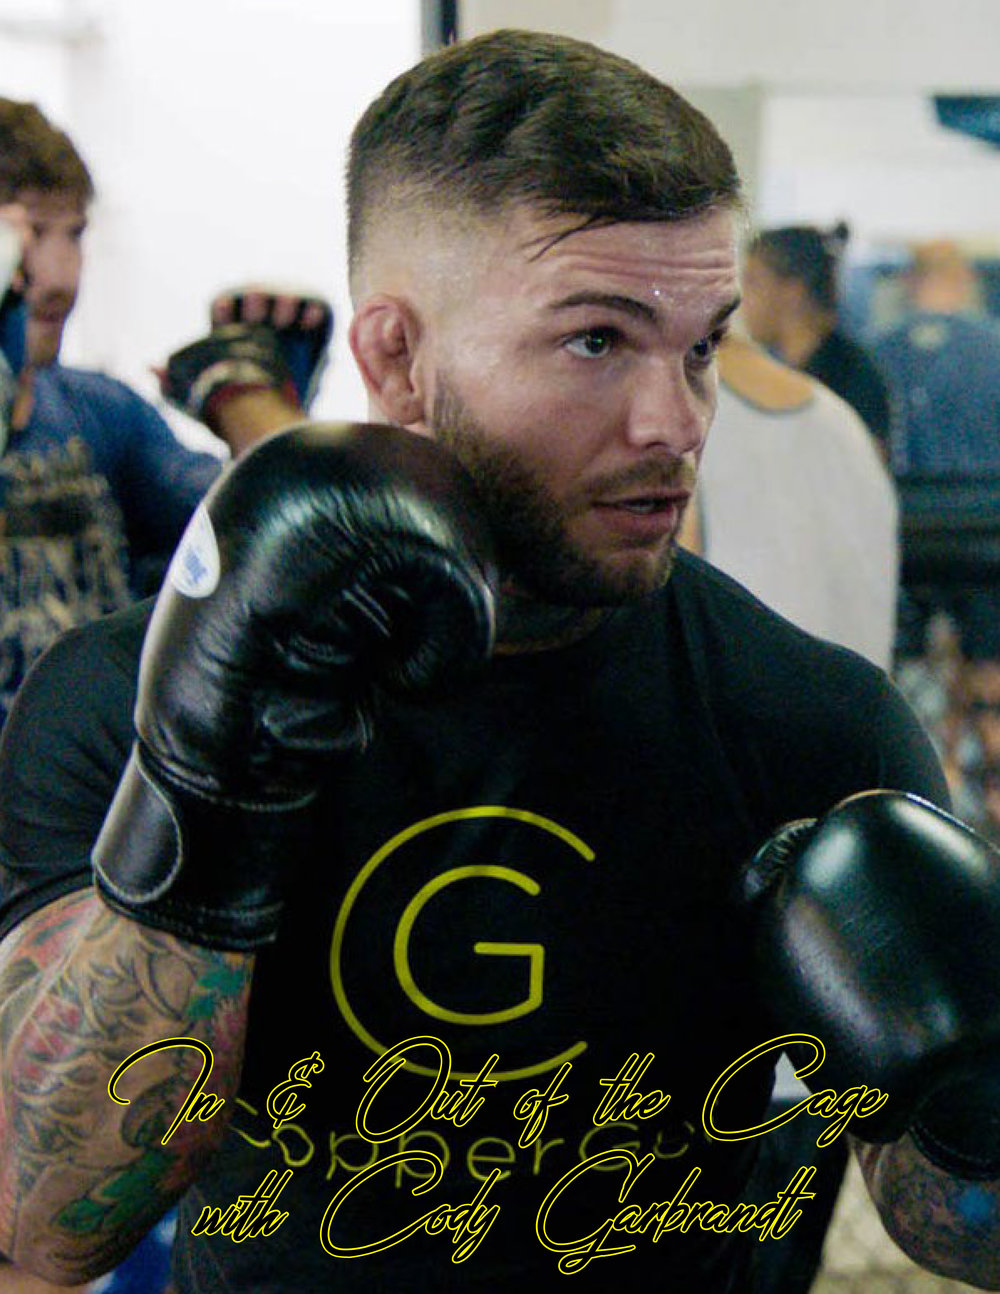 AM APR IN & OUT OF THE RING WITH CODY GARBRANDT-1.jpg